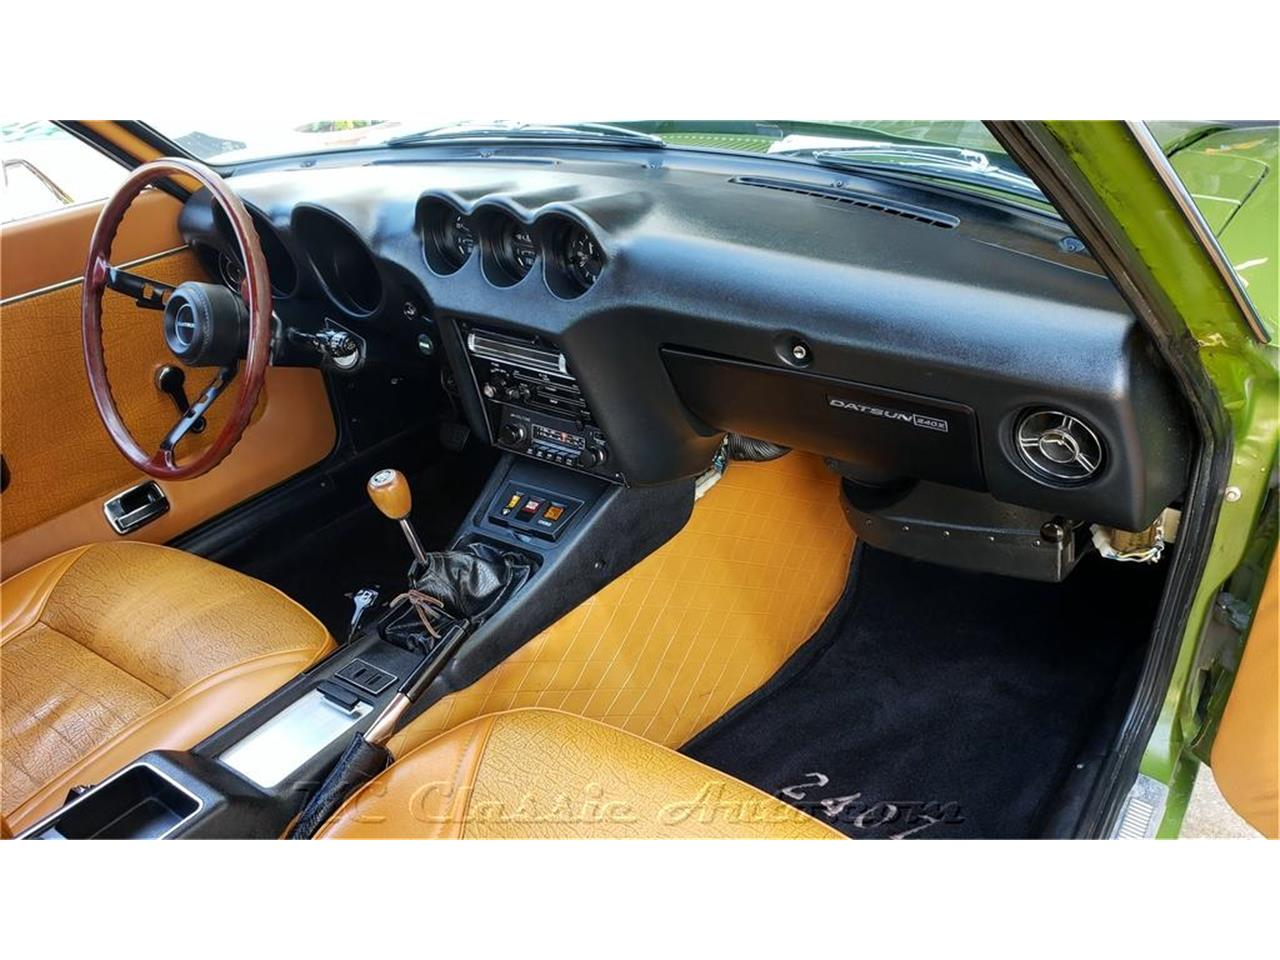 Large Picture of Classic 1973 Datsun 240Z located in Lenexa Kansas - $34,900.00 - QQW1